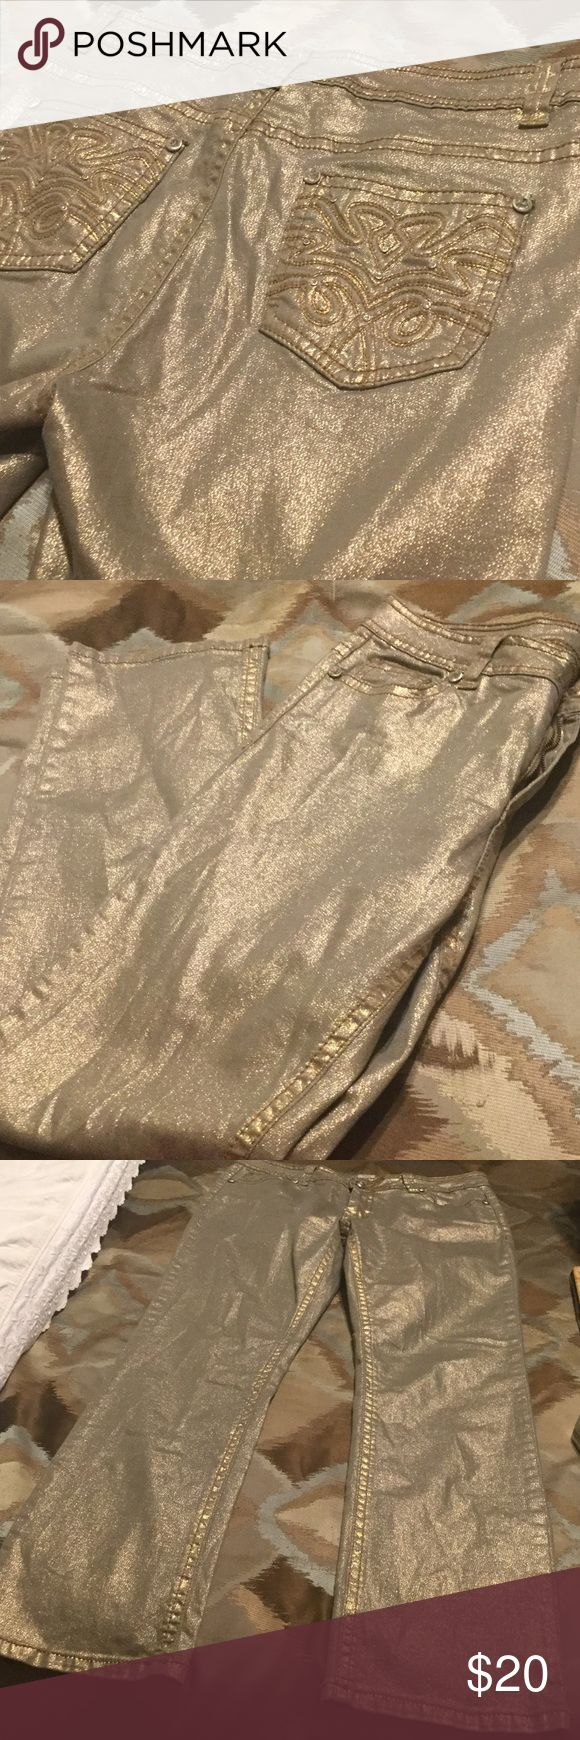 "REBA METALLIC GOLD JEANS! NWOT New without tags.  Beautiful color and intricate details on these jean pockets and throughout.  Wear these cuties with a stark white shirt and gold or white sneakers and you have a beautiful, relaxing, casual outfit.  Size 12.  Inseam 31""; Total length 42"".  NA Reba Jeans"